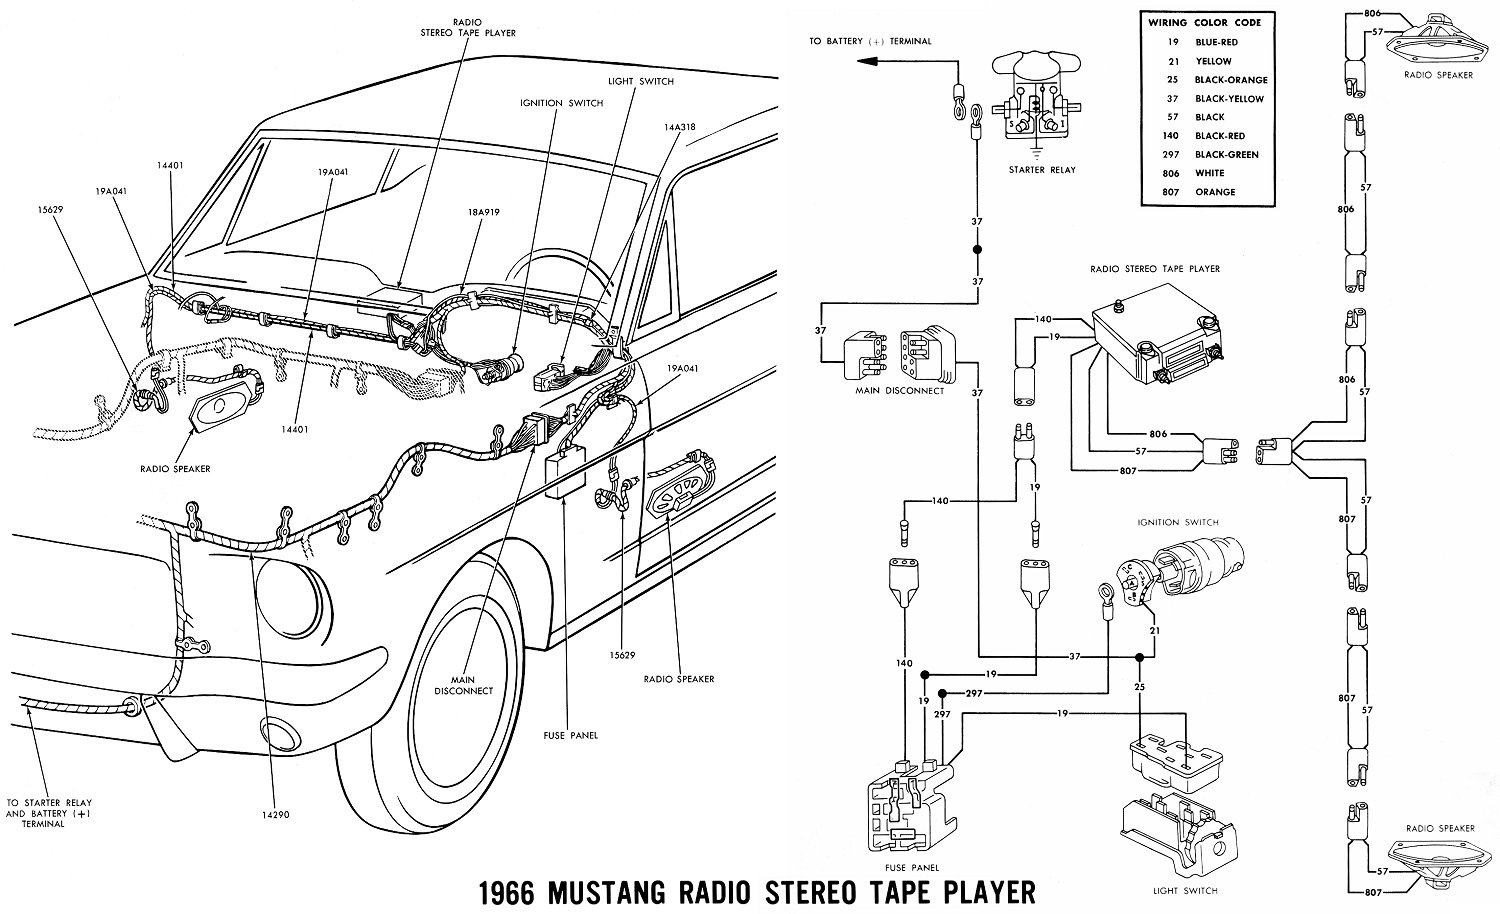 Wiring Diagram For 1969 Ford Mustang List Of Schematic Circuit 1995 Mercury Cougar Xr7 Fuse Box Vintage Diagrams Rh Midlife66 Com